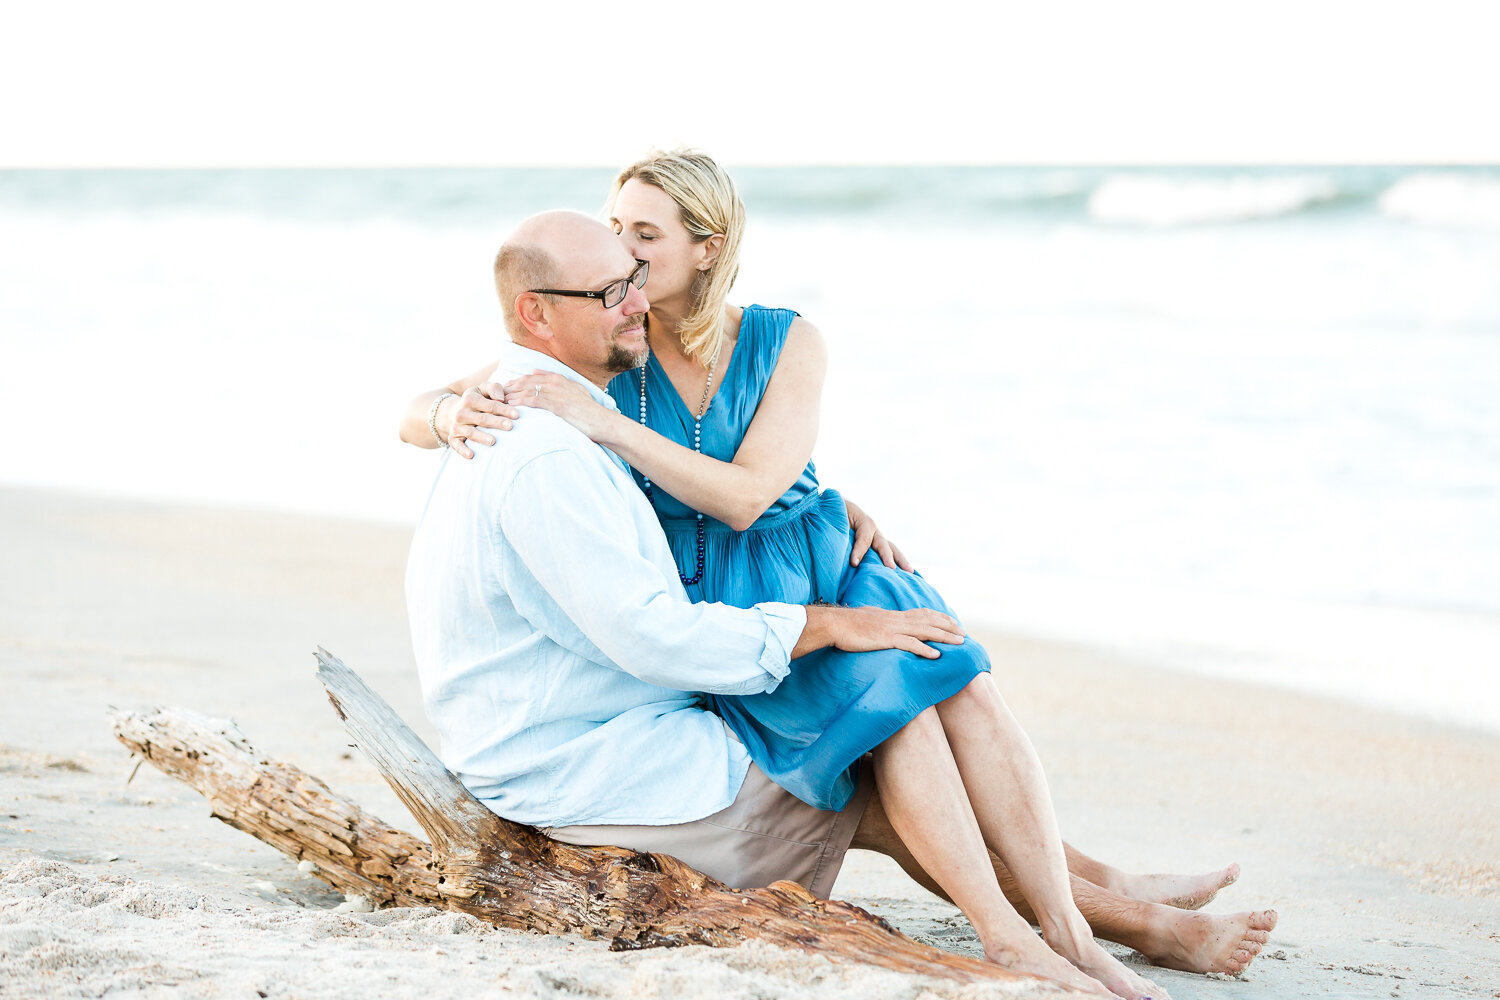 couple engagement picture ideas in Guana beach during sunset